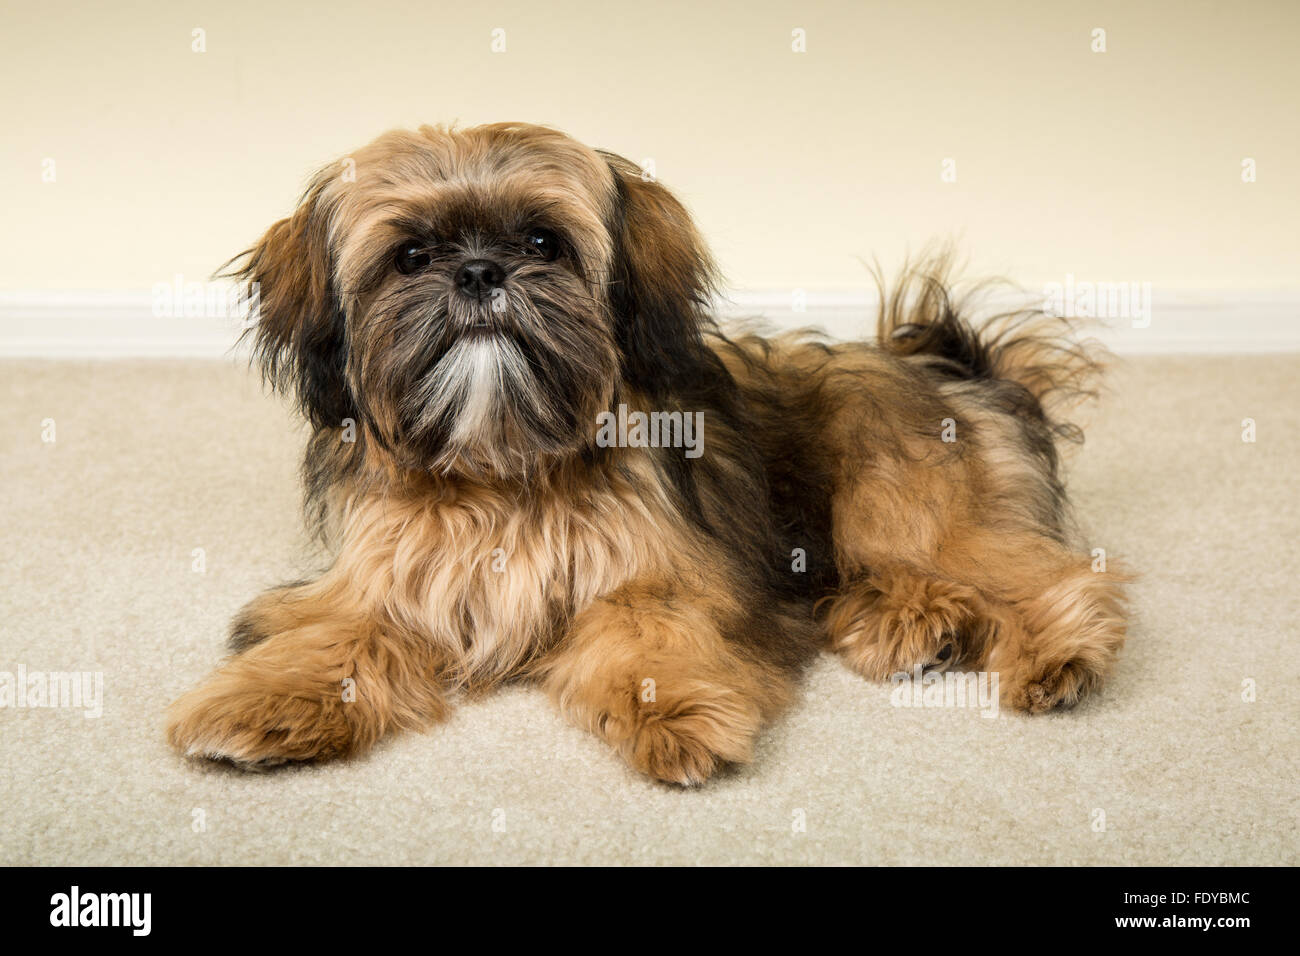 Five Month Old Shih Tzu Puppy Wilson In A Reclining Pose In Stock